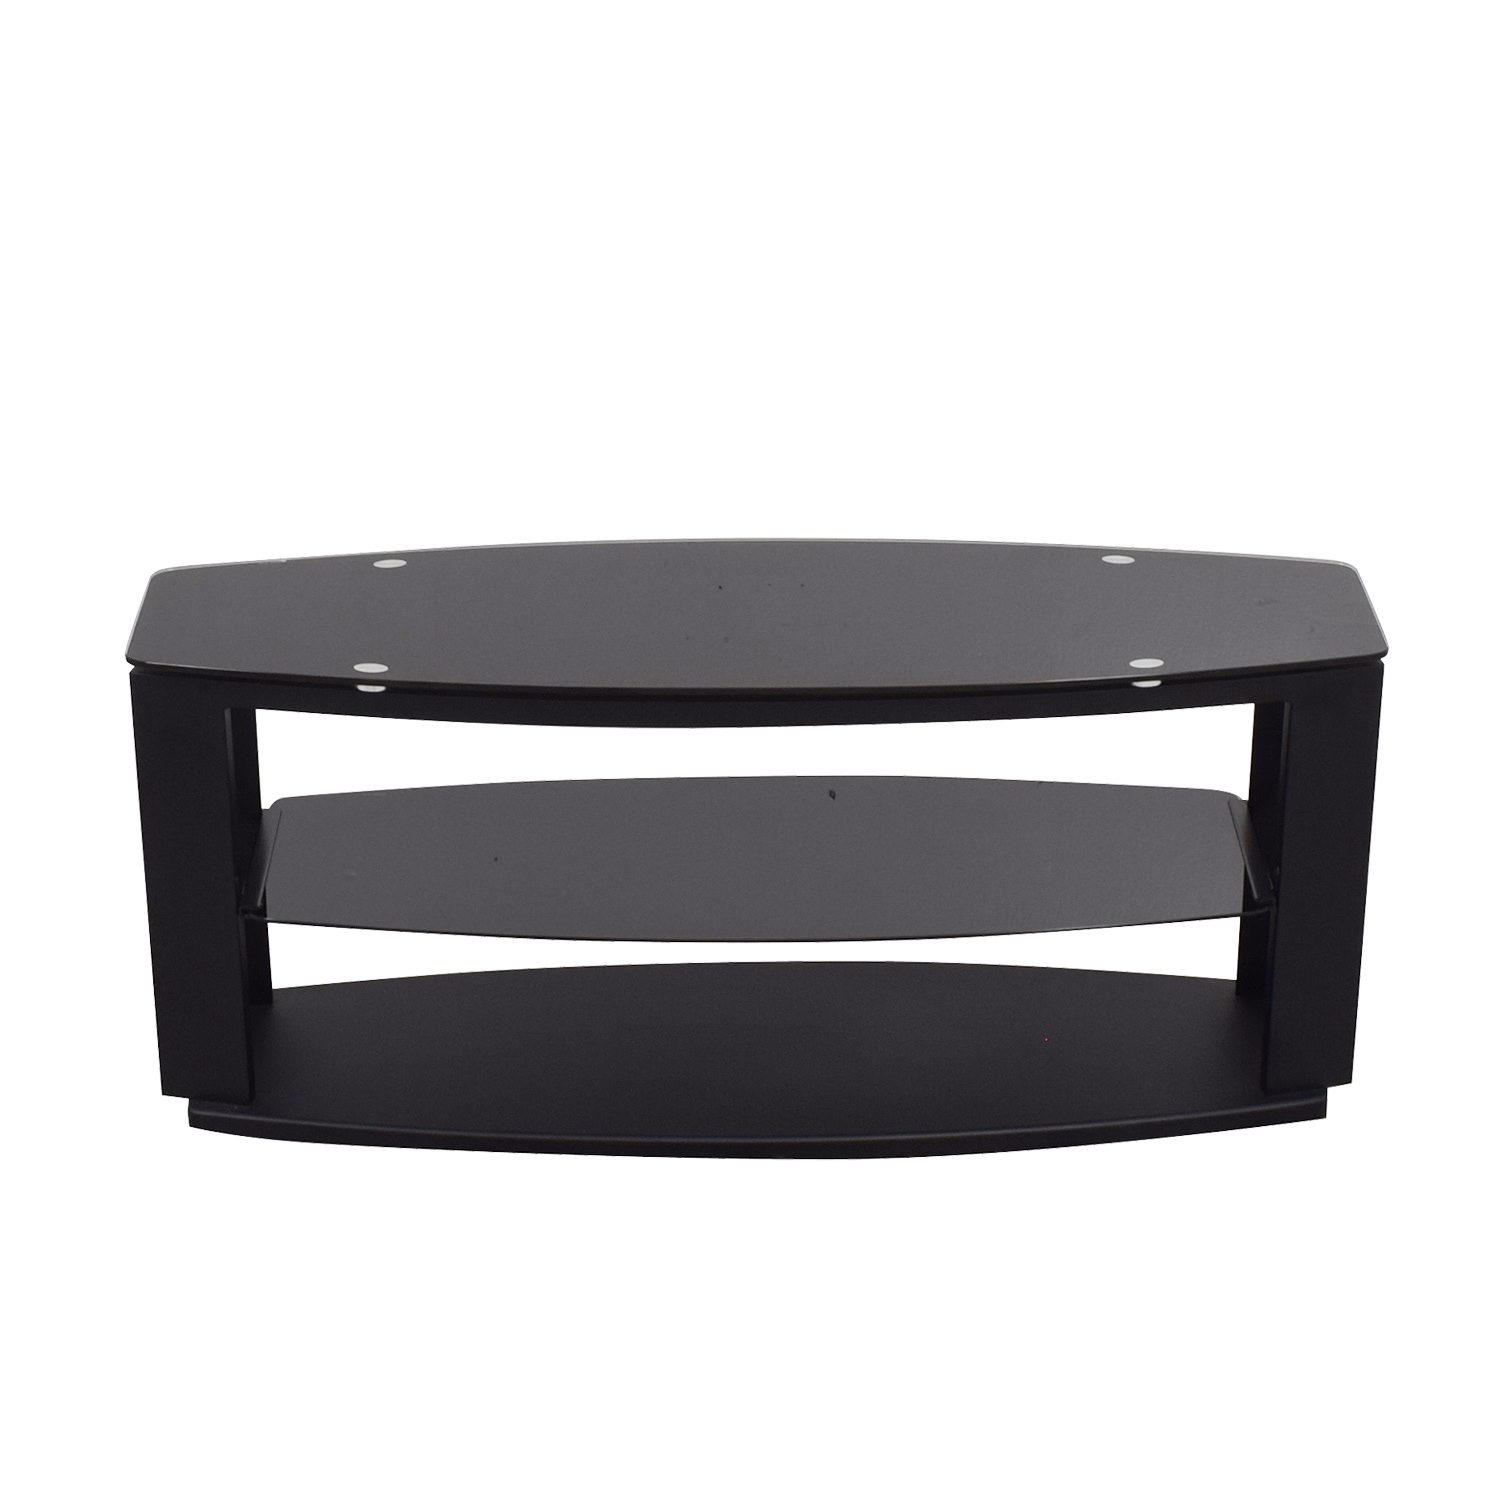 shop Modani Black Glass and Metal TV Stand Modani Media Units